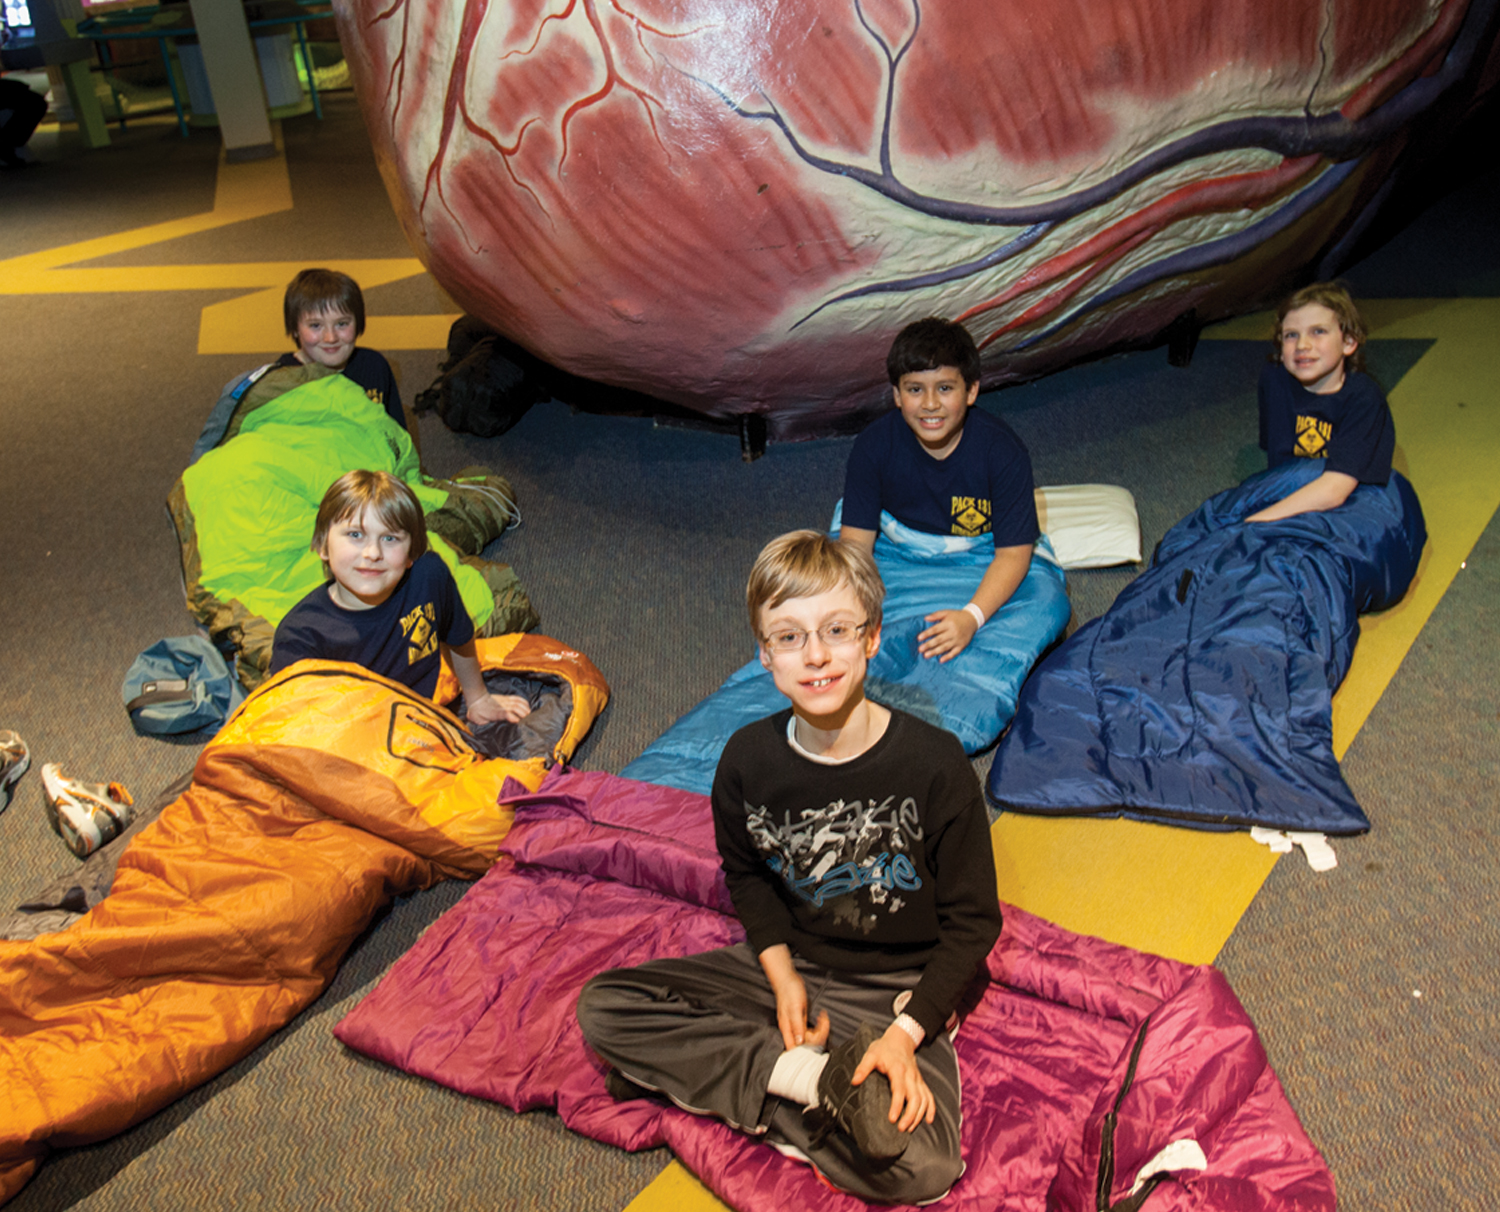 Five boy scouts in their sleeping bags infront of The Giant Heart during a Camp-In event.